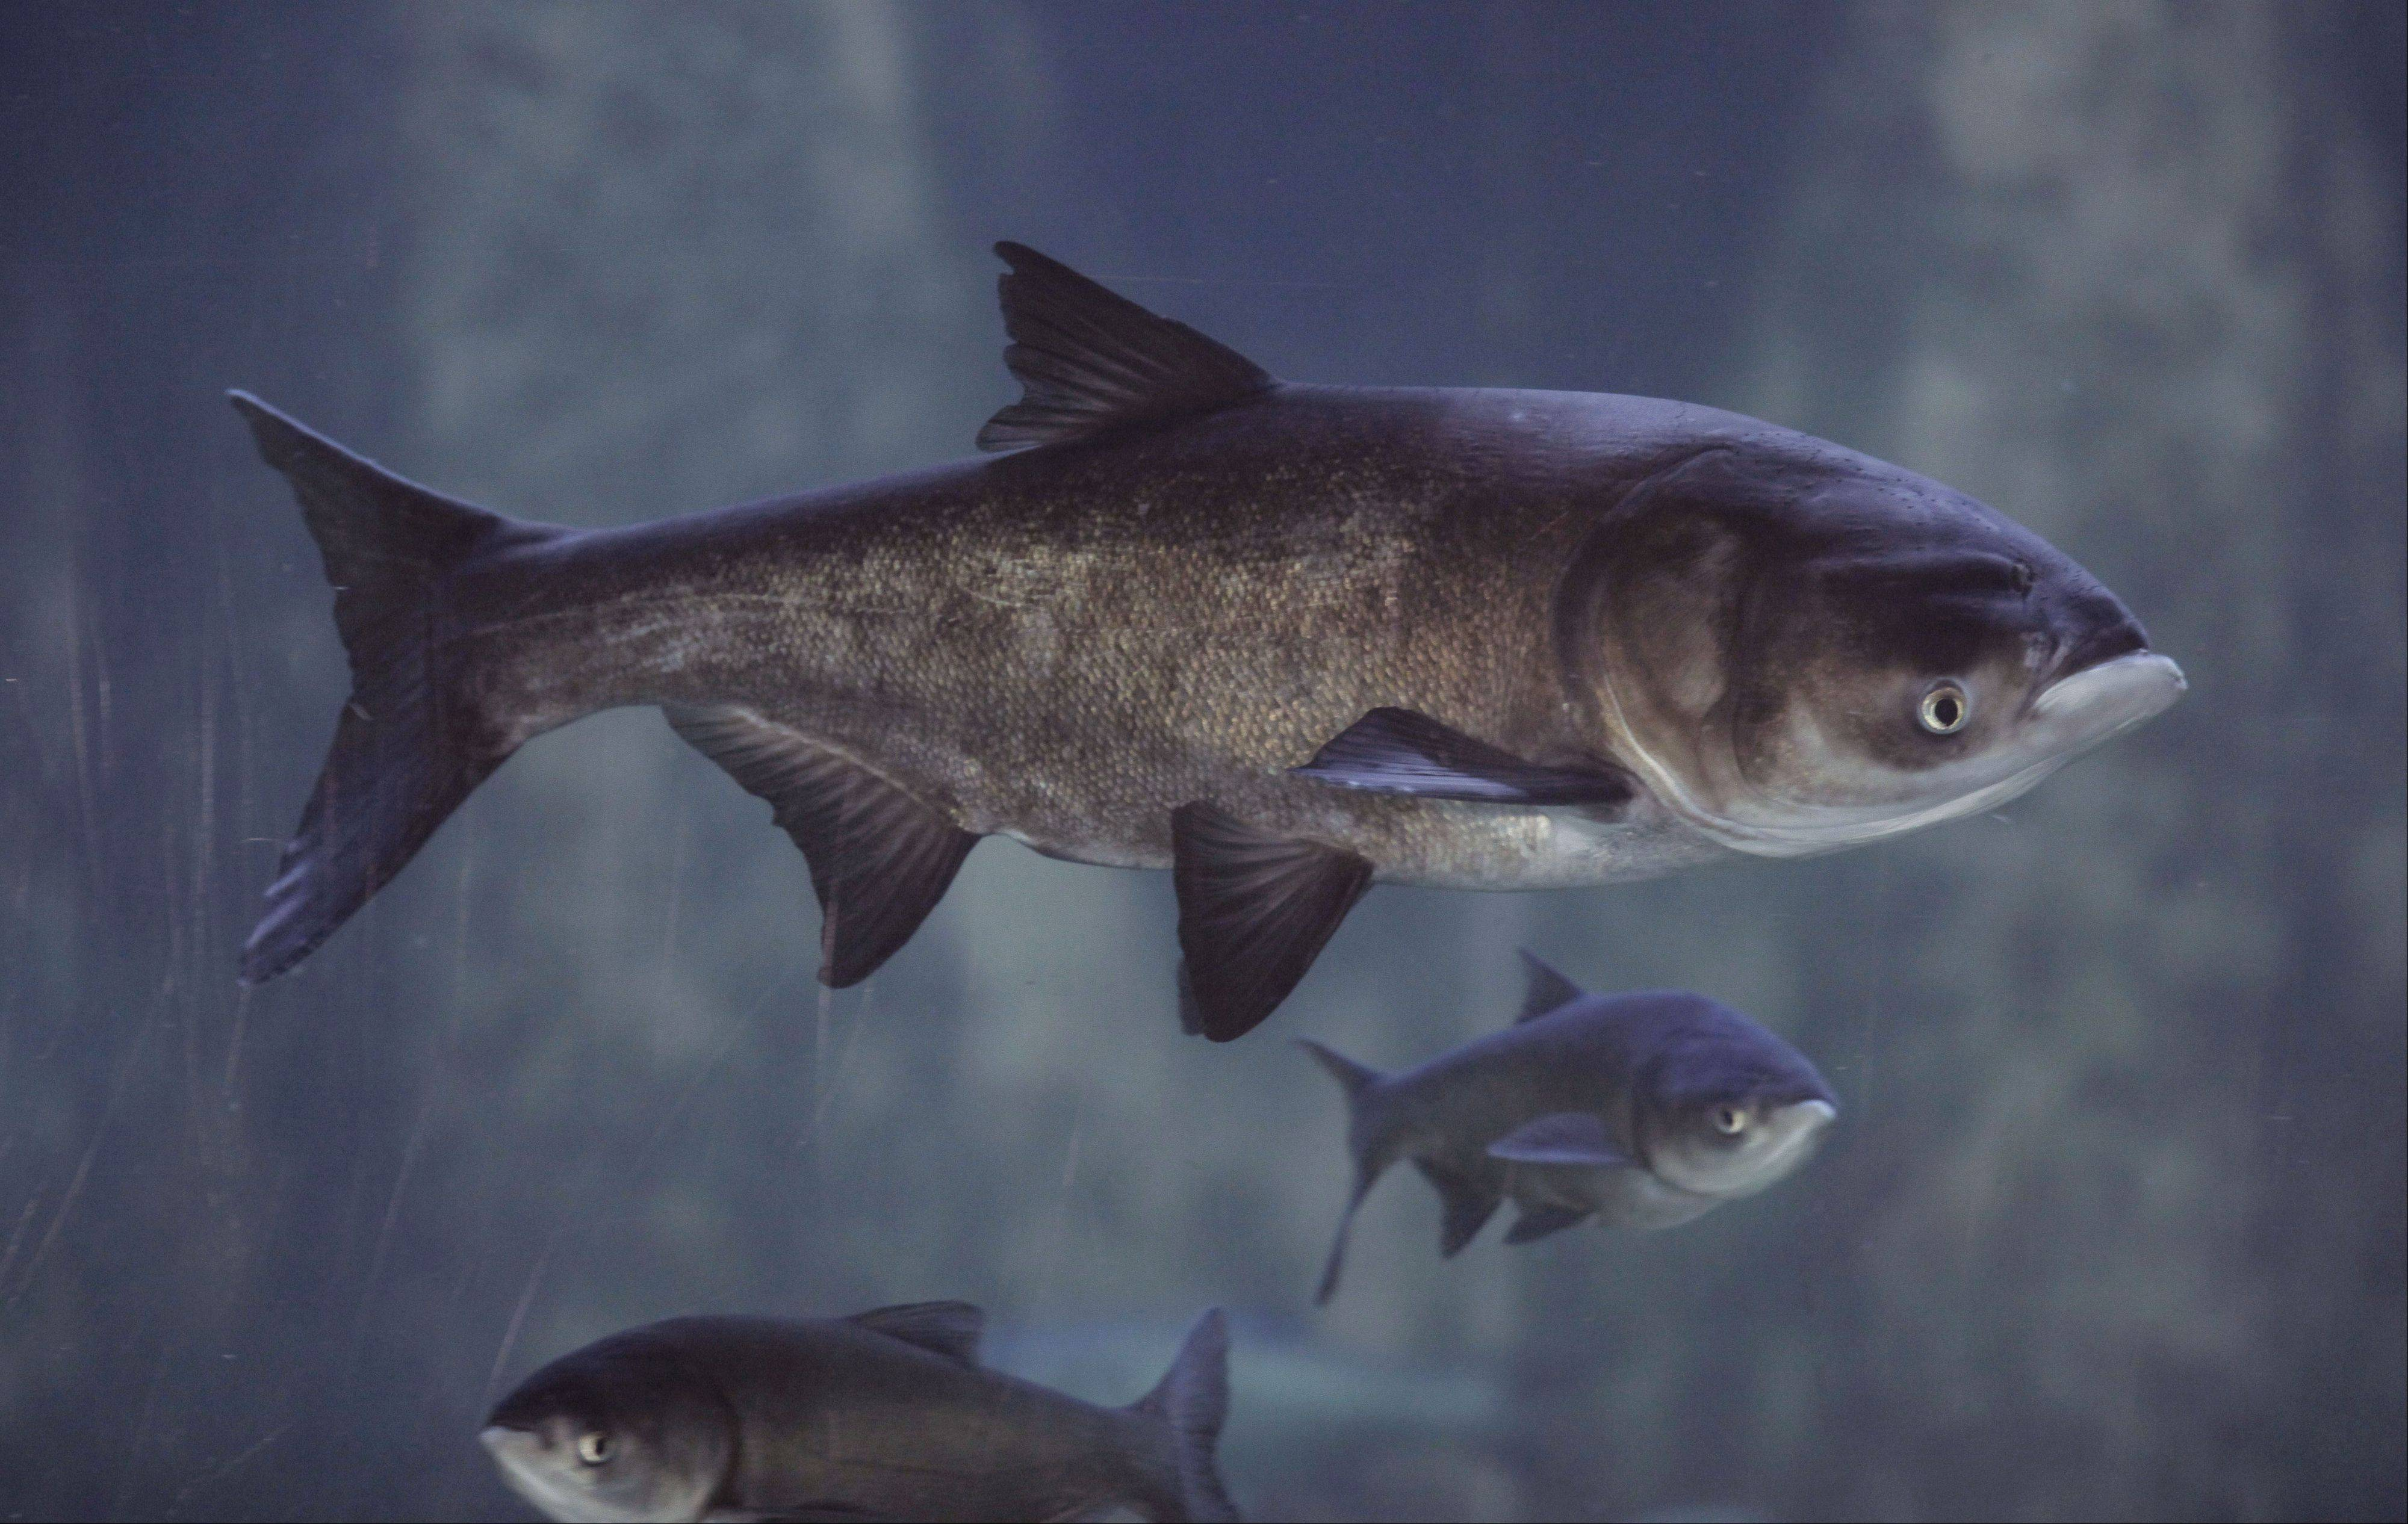 Fisheries specialist Bill Taylor of Michigan State University said Thursday that eliminating the man-made connection between the lakes and the Mississippi would be expensive but would solve the Asian carp problem.